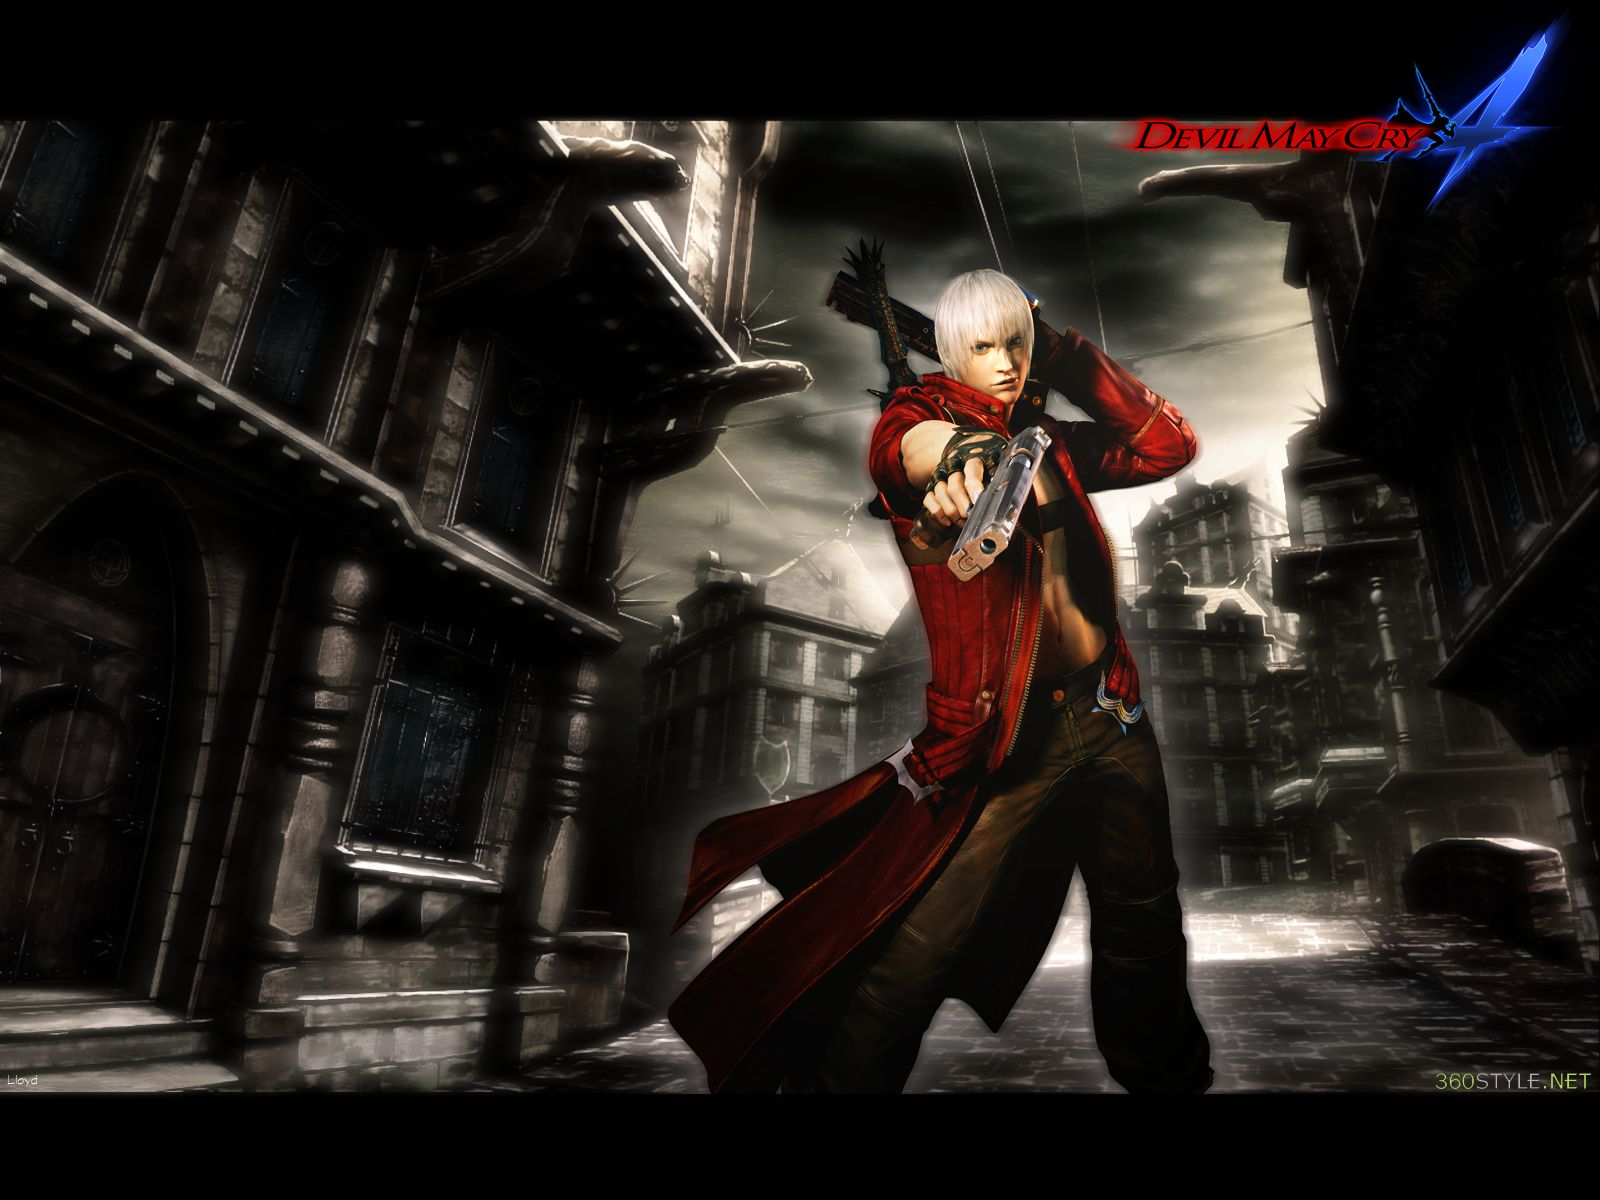 devil may cry 4 wallpaperigotgame1075 on deviantart